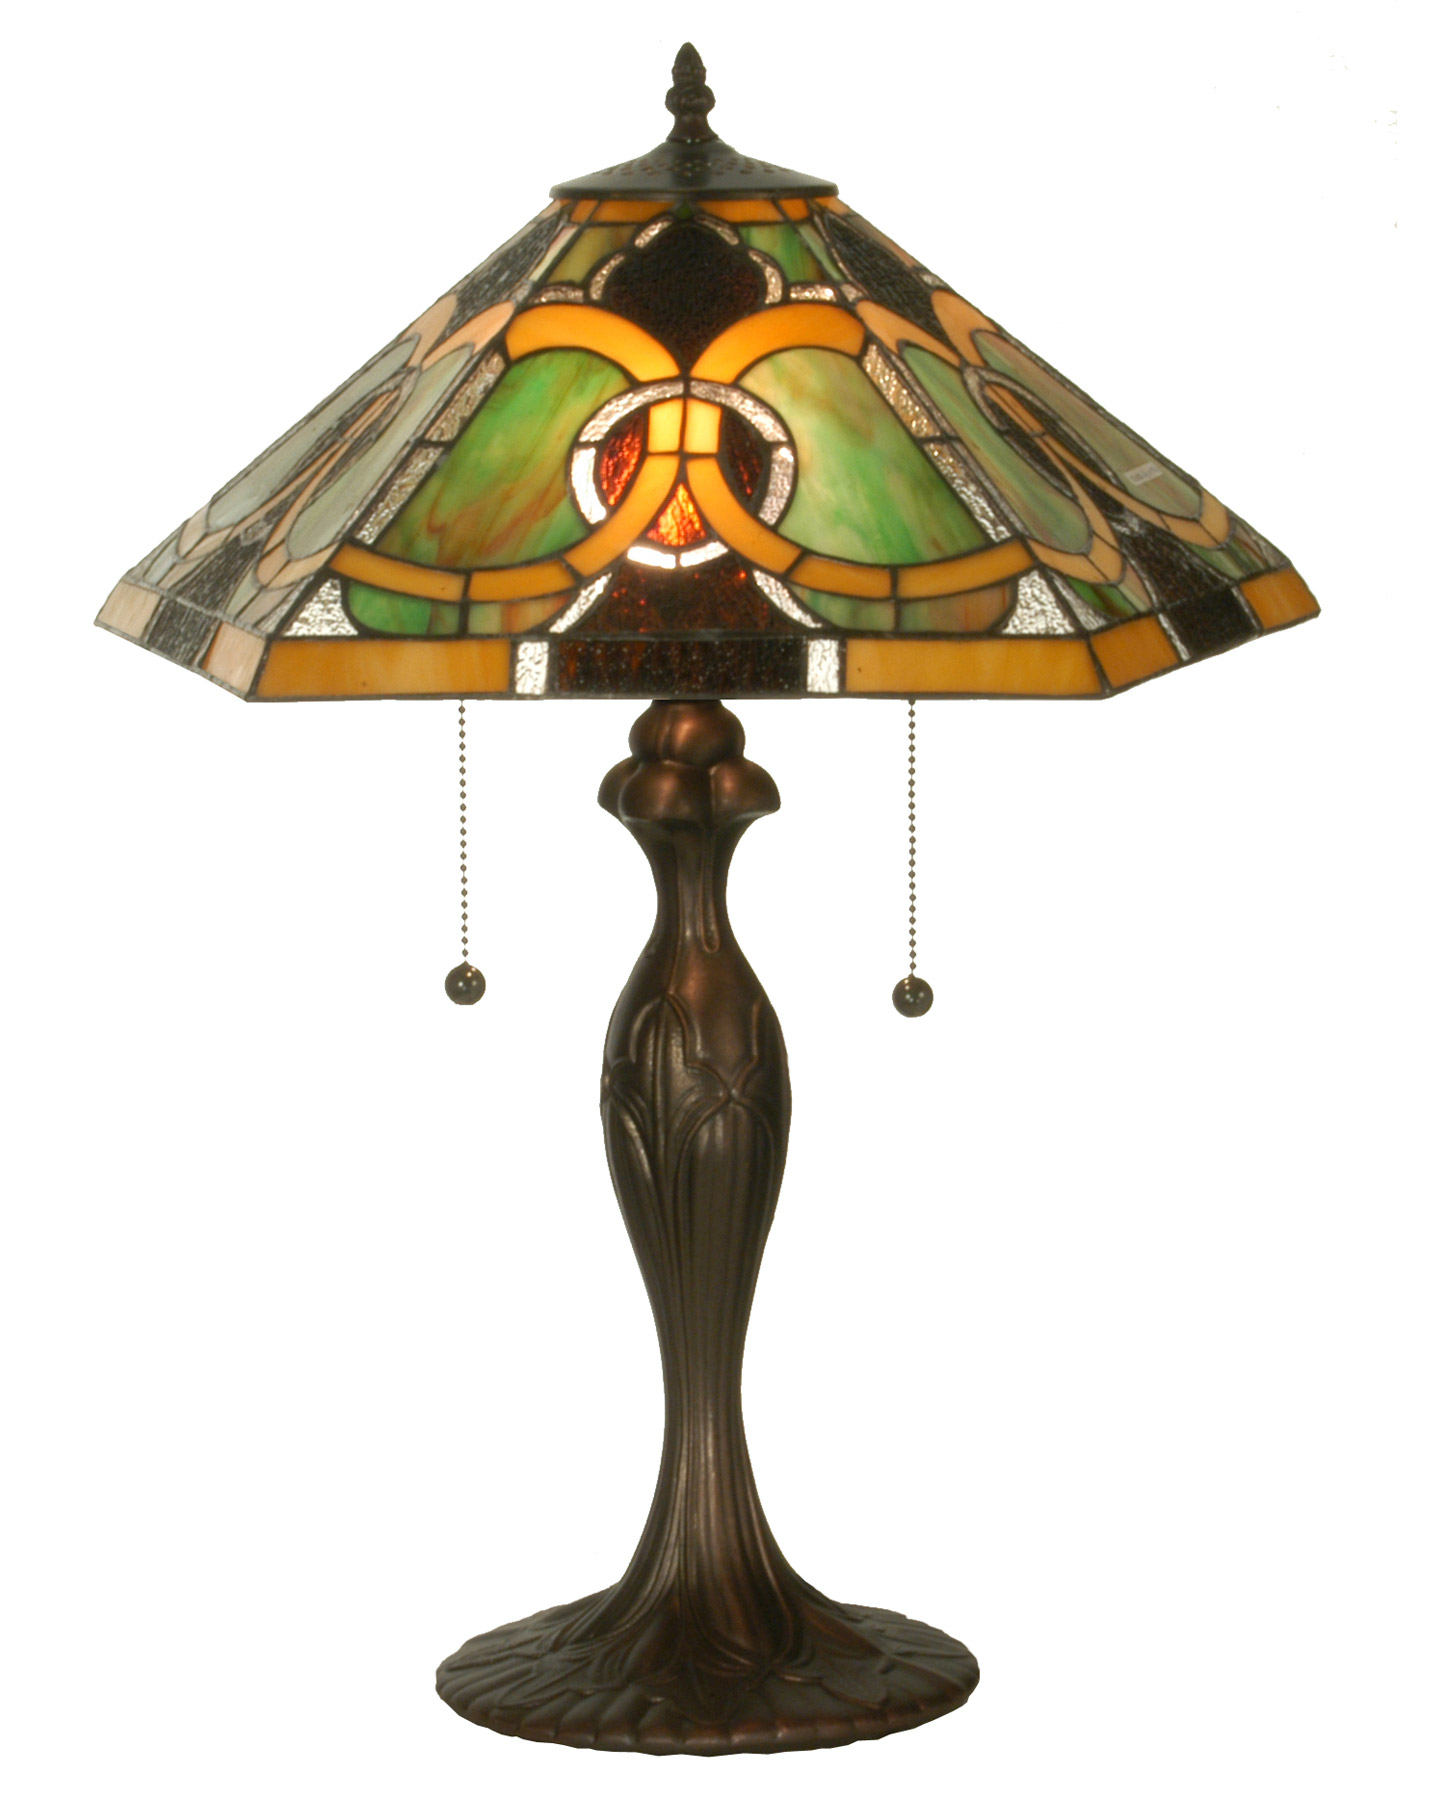 home lamps table lamps standard table lamps meyda 81458. Black Bedroom Furniture Sets. Home Design Ideas